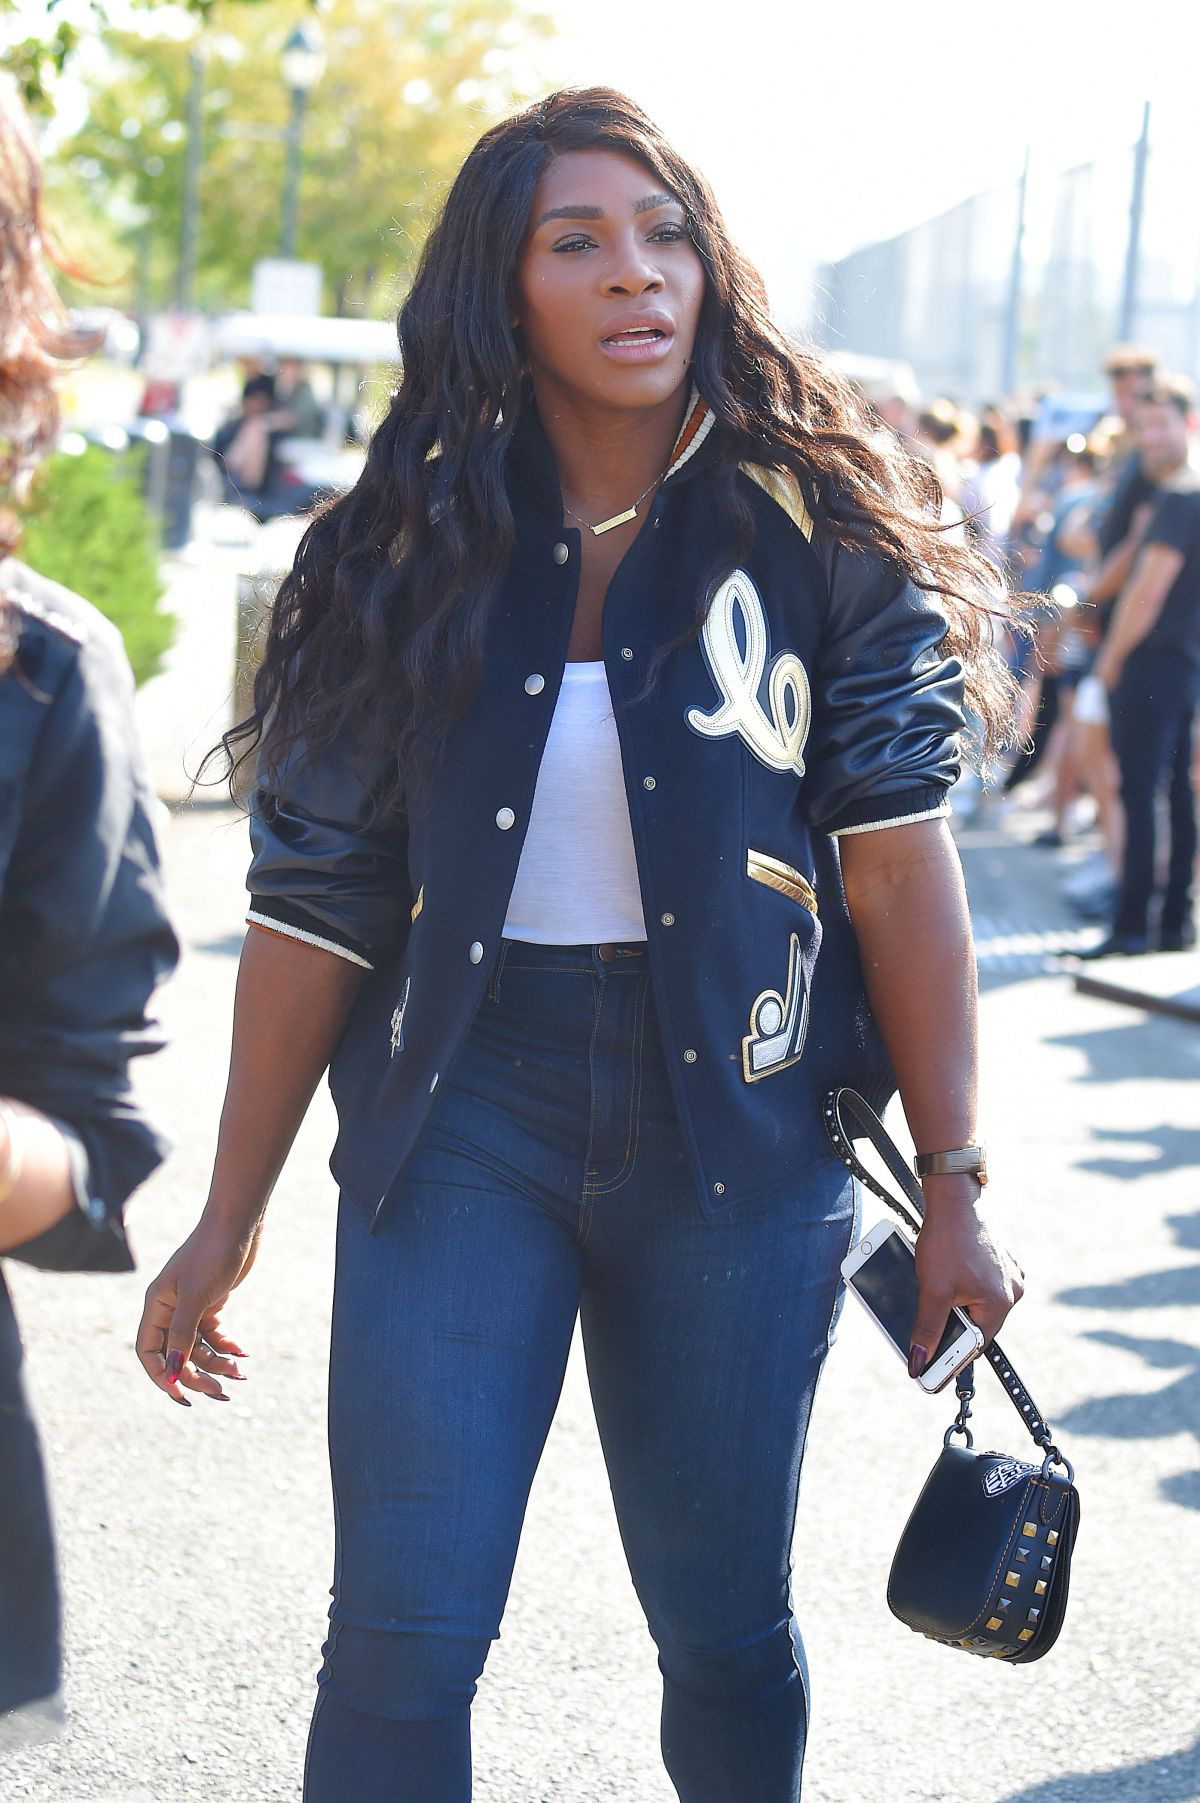 SERENA WILLIAMS Arrives at Coach 1941 Fashion Show in New York 09/13/2016